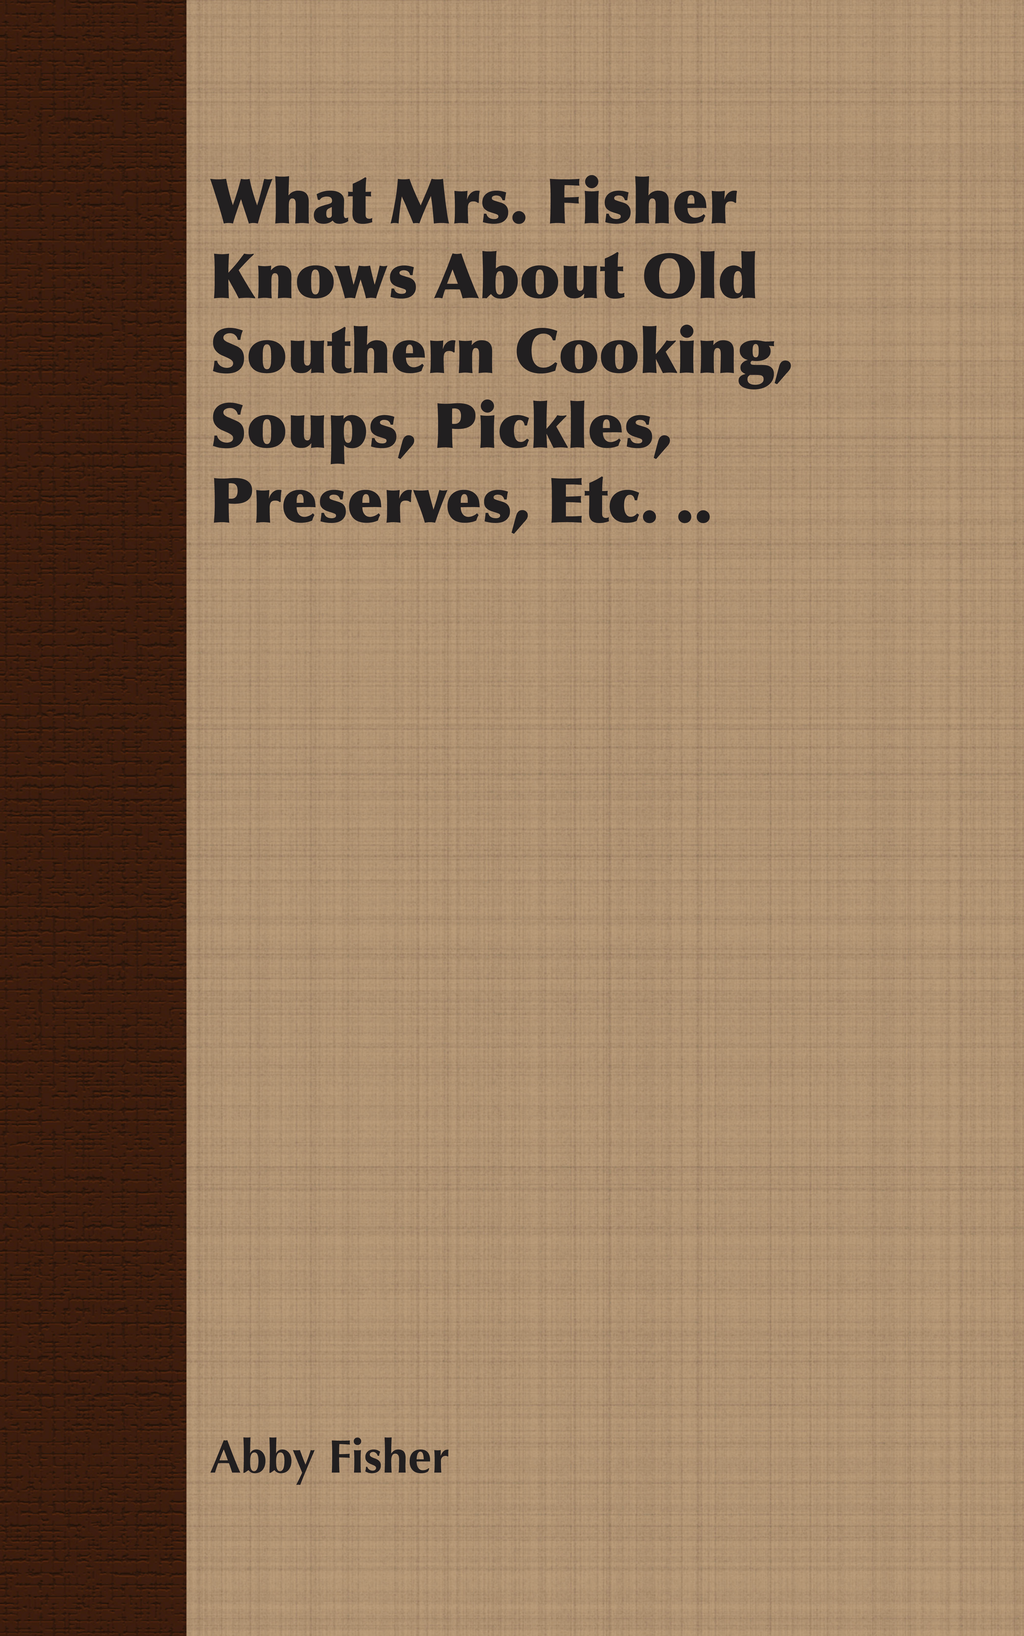 What Mrs. Fisher Knows About Old Southern Cooking, Soups, Pickles, Preserves, Etc. .. By: Abby Fisher